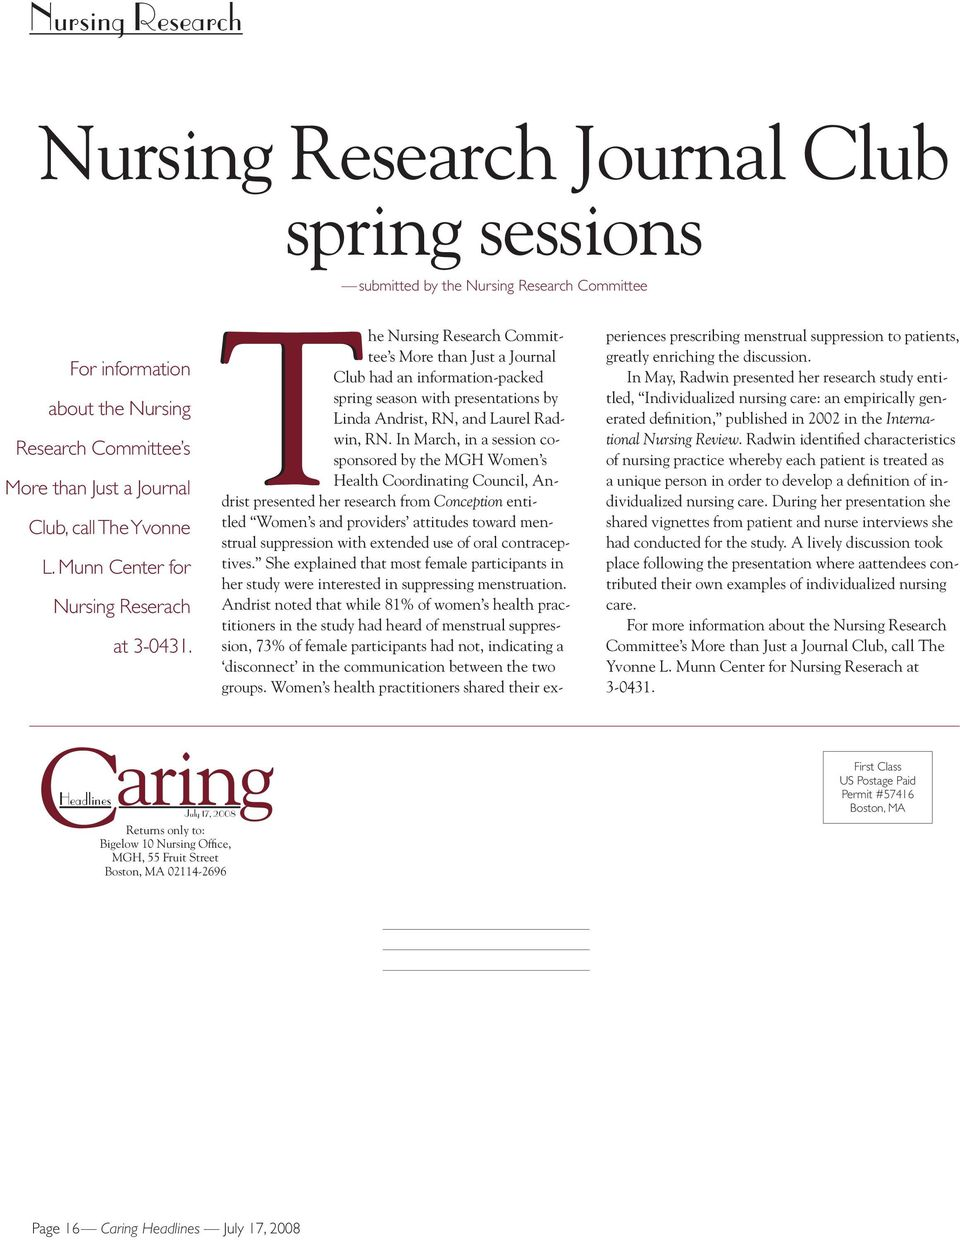 The Nursing Research Committee s More than Just a Journal Club had an information-packed spring season with presentations by Linda Andrist, RN, and Laurel Radwin, RN.